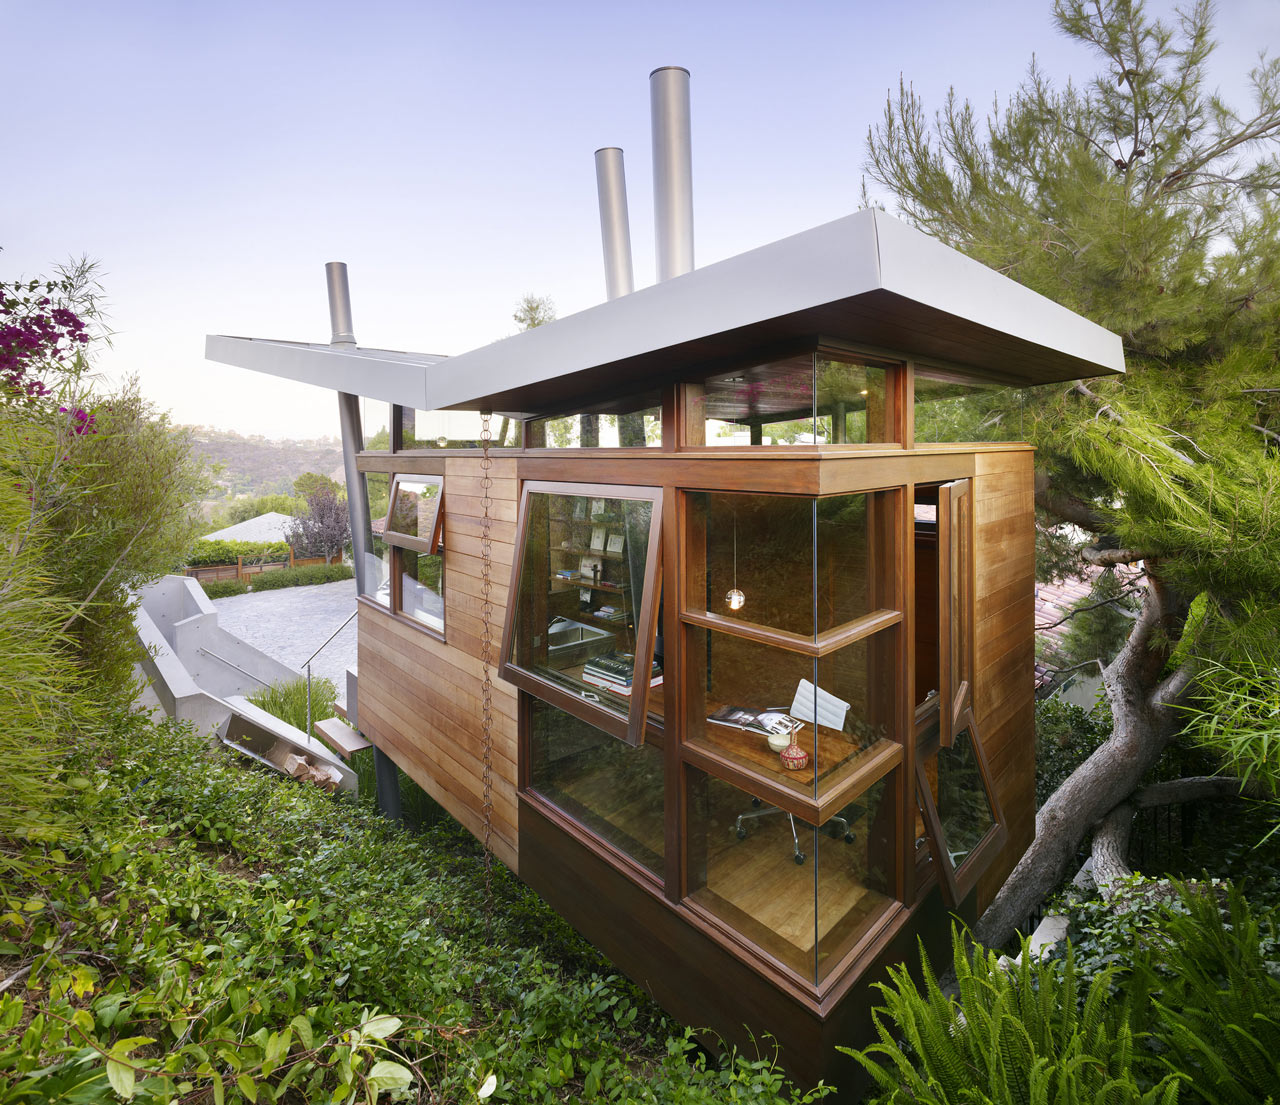 10 Modern Treehouses We'd Love to Have in Our Own Backyard